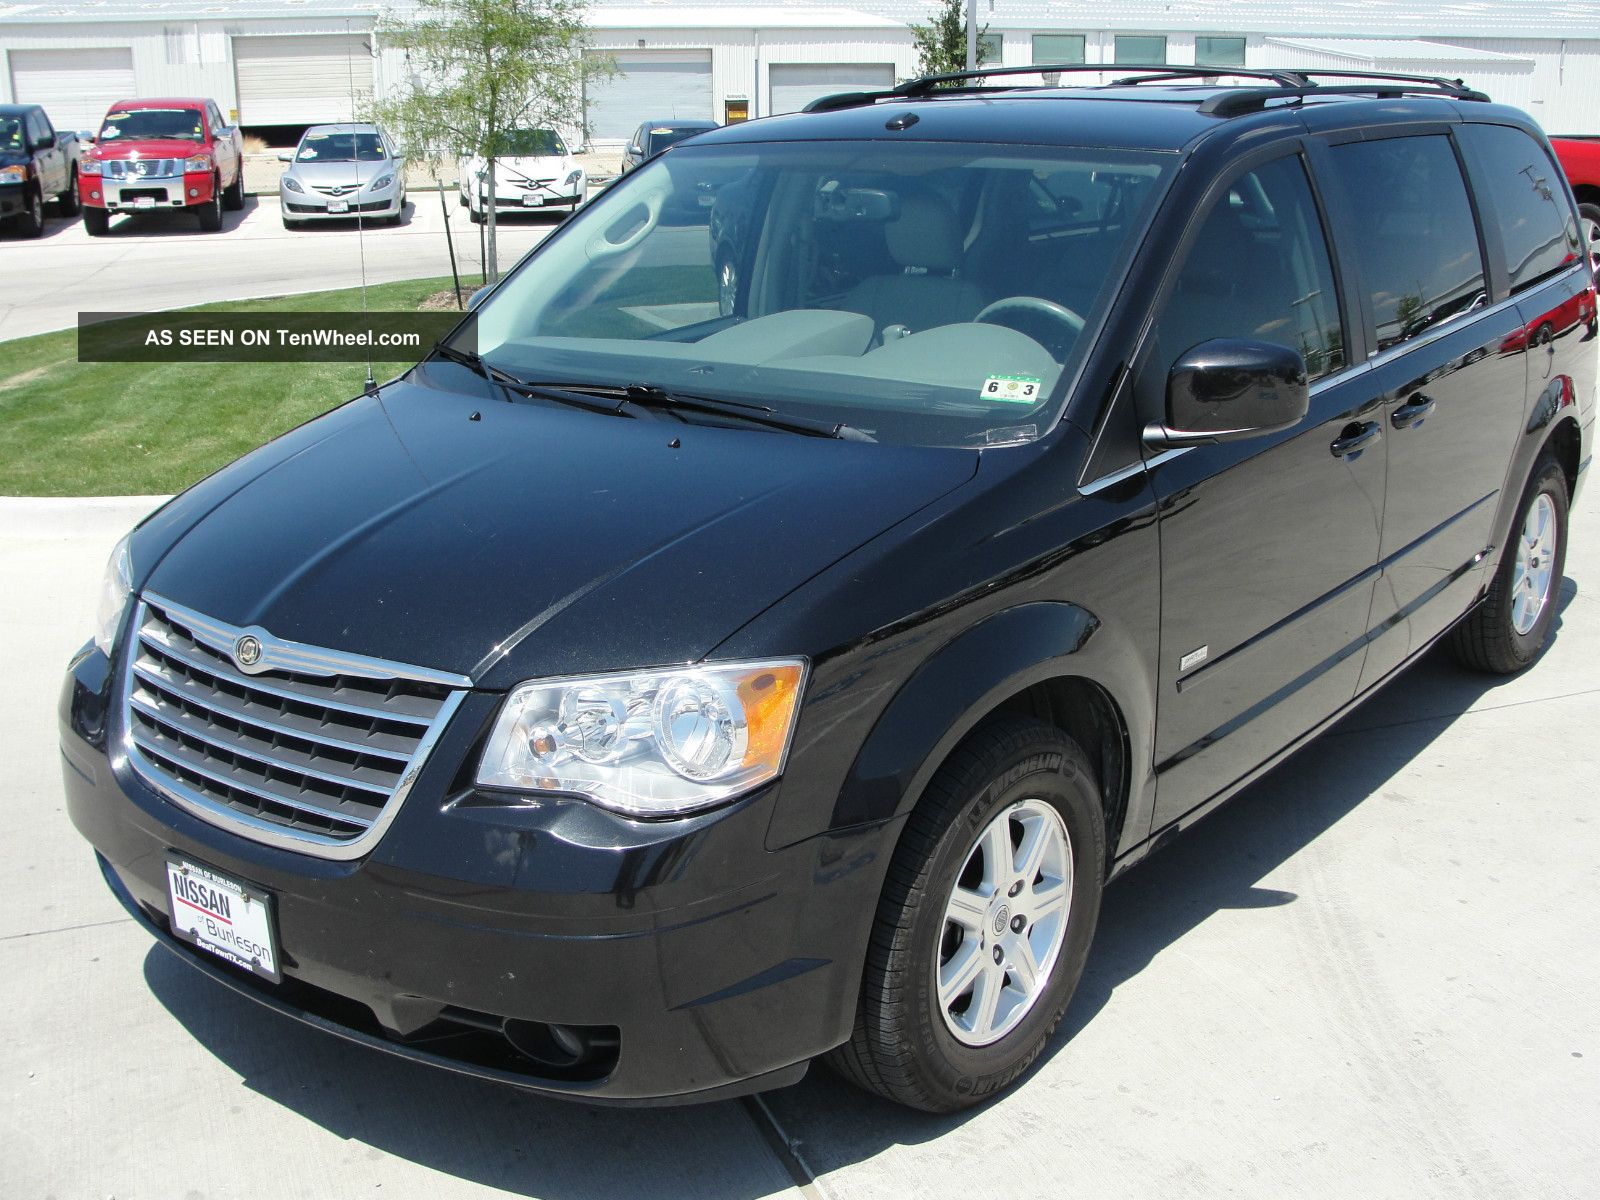 2008 chrysler town country dvd minivan. Black Bedroom Furniture Sets. Home Design Ideas